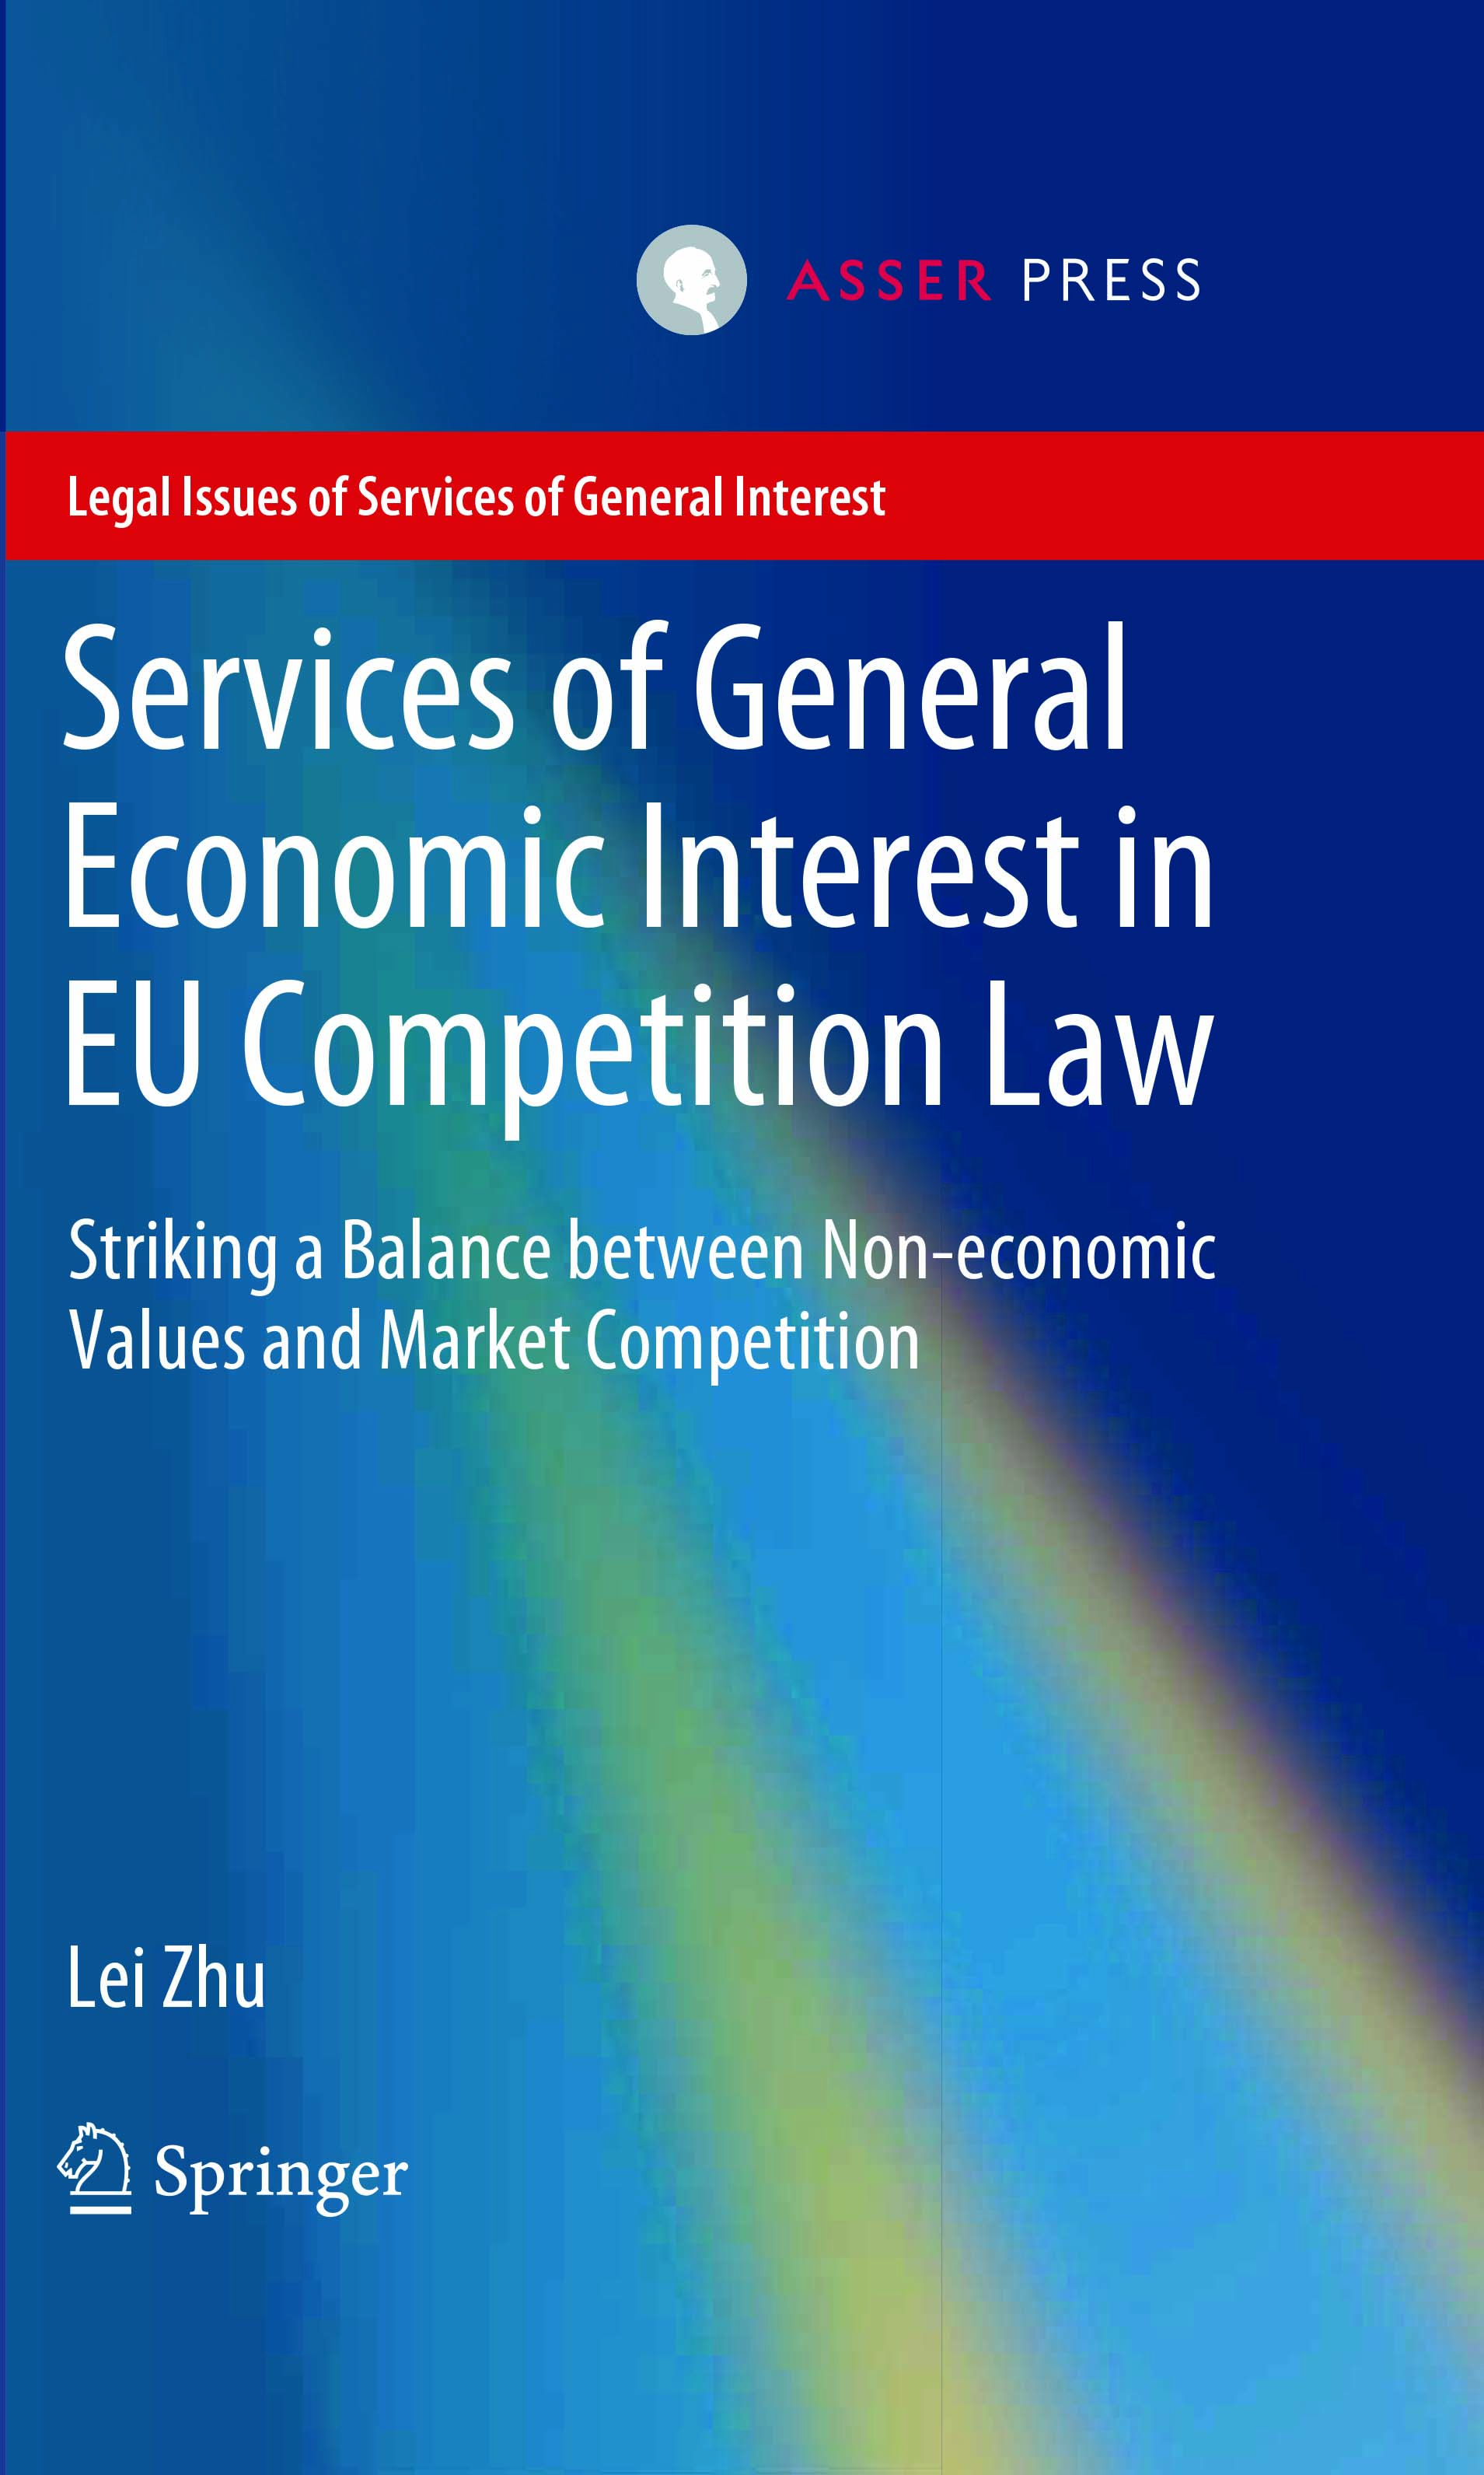 Services of General Economic Interest in EU Competition Law - Striking a Balance between Non-economic Values and Market Competition